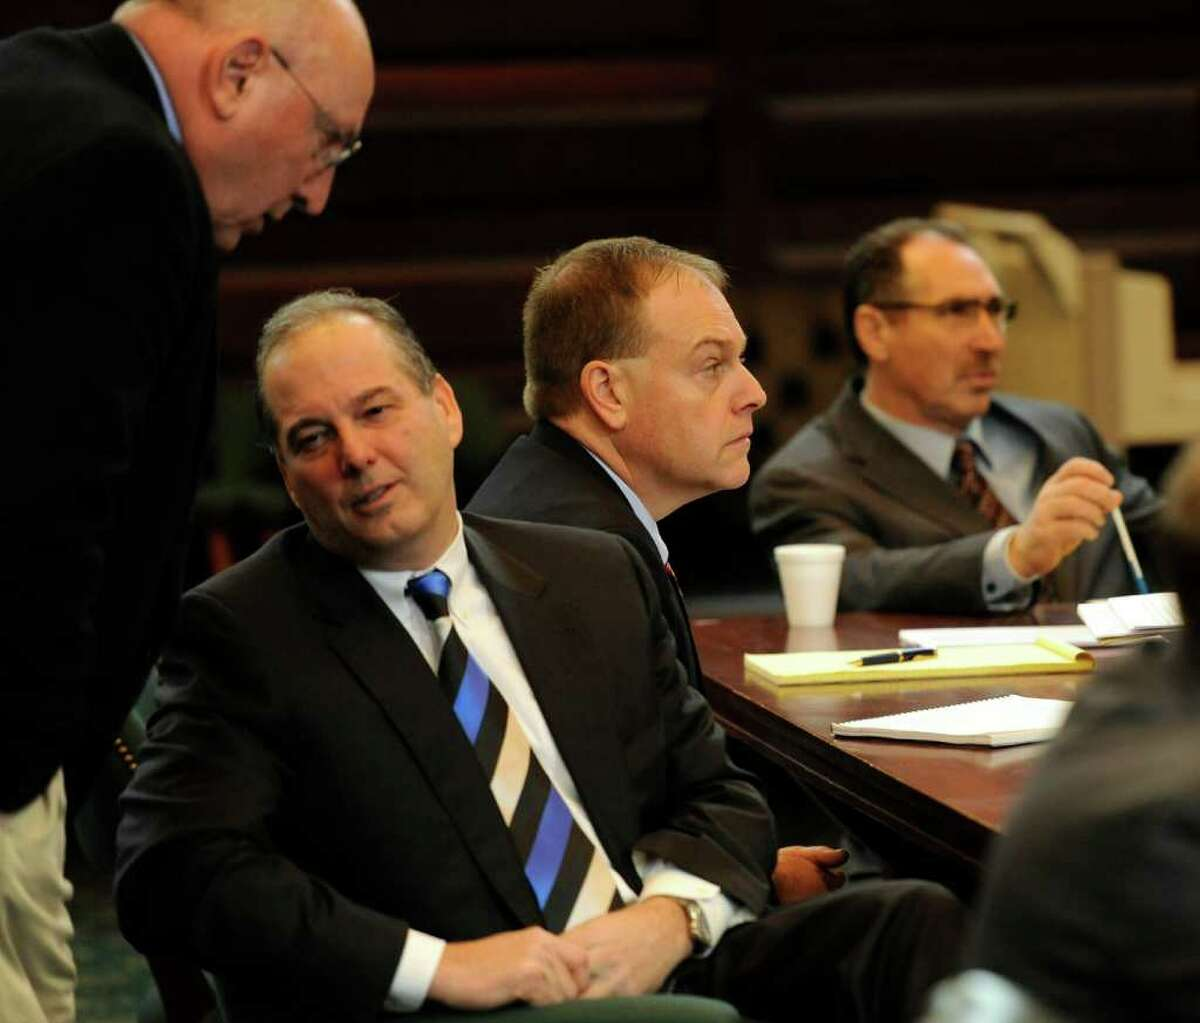 From left, attorneys Michael Feit and Brian Premo speak at the Rensselear County Courthouse in Troy, N.Y. Jan. 24, 2012, in the ballot fraud case of their respective clients, Michael LoPorto, right, and Edward McDonough. (Skip Dickstein / Times Union archive)